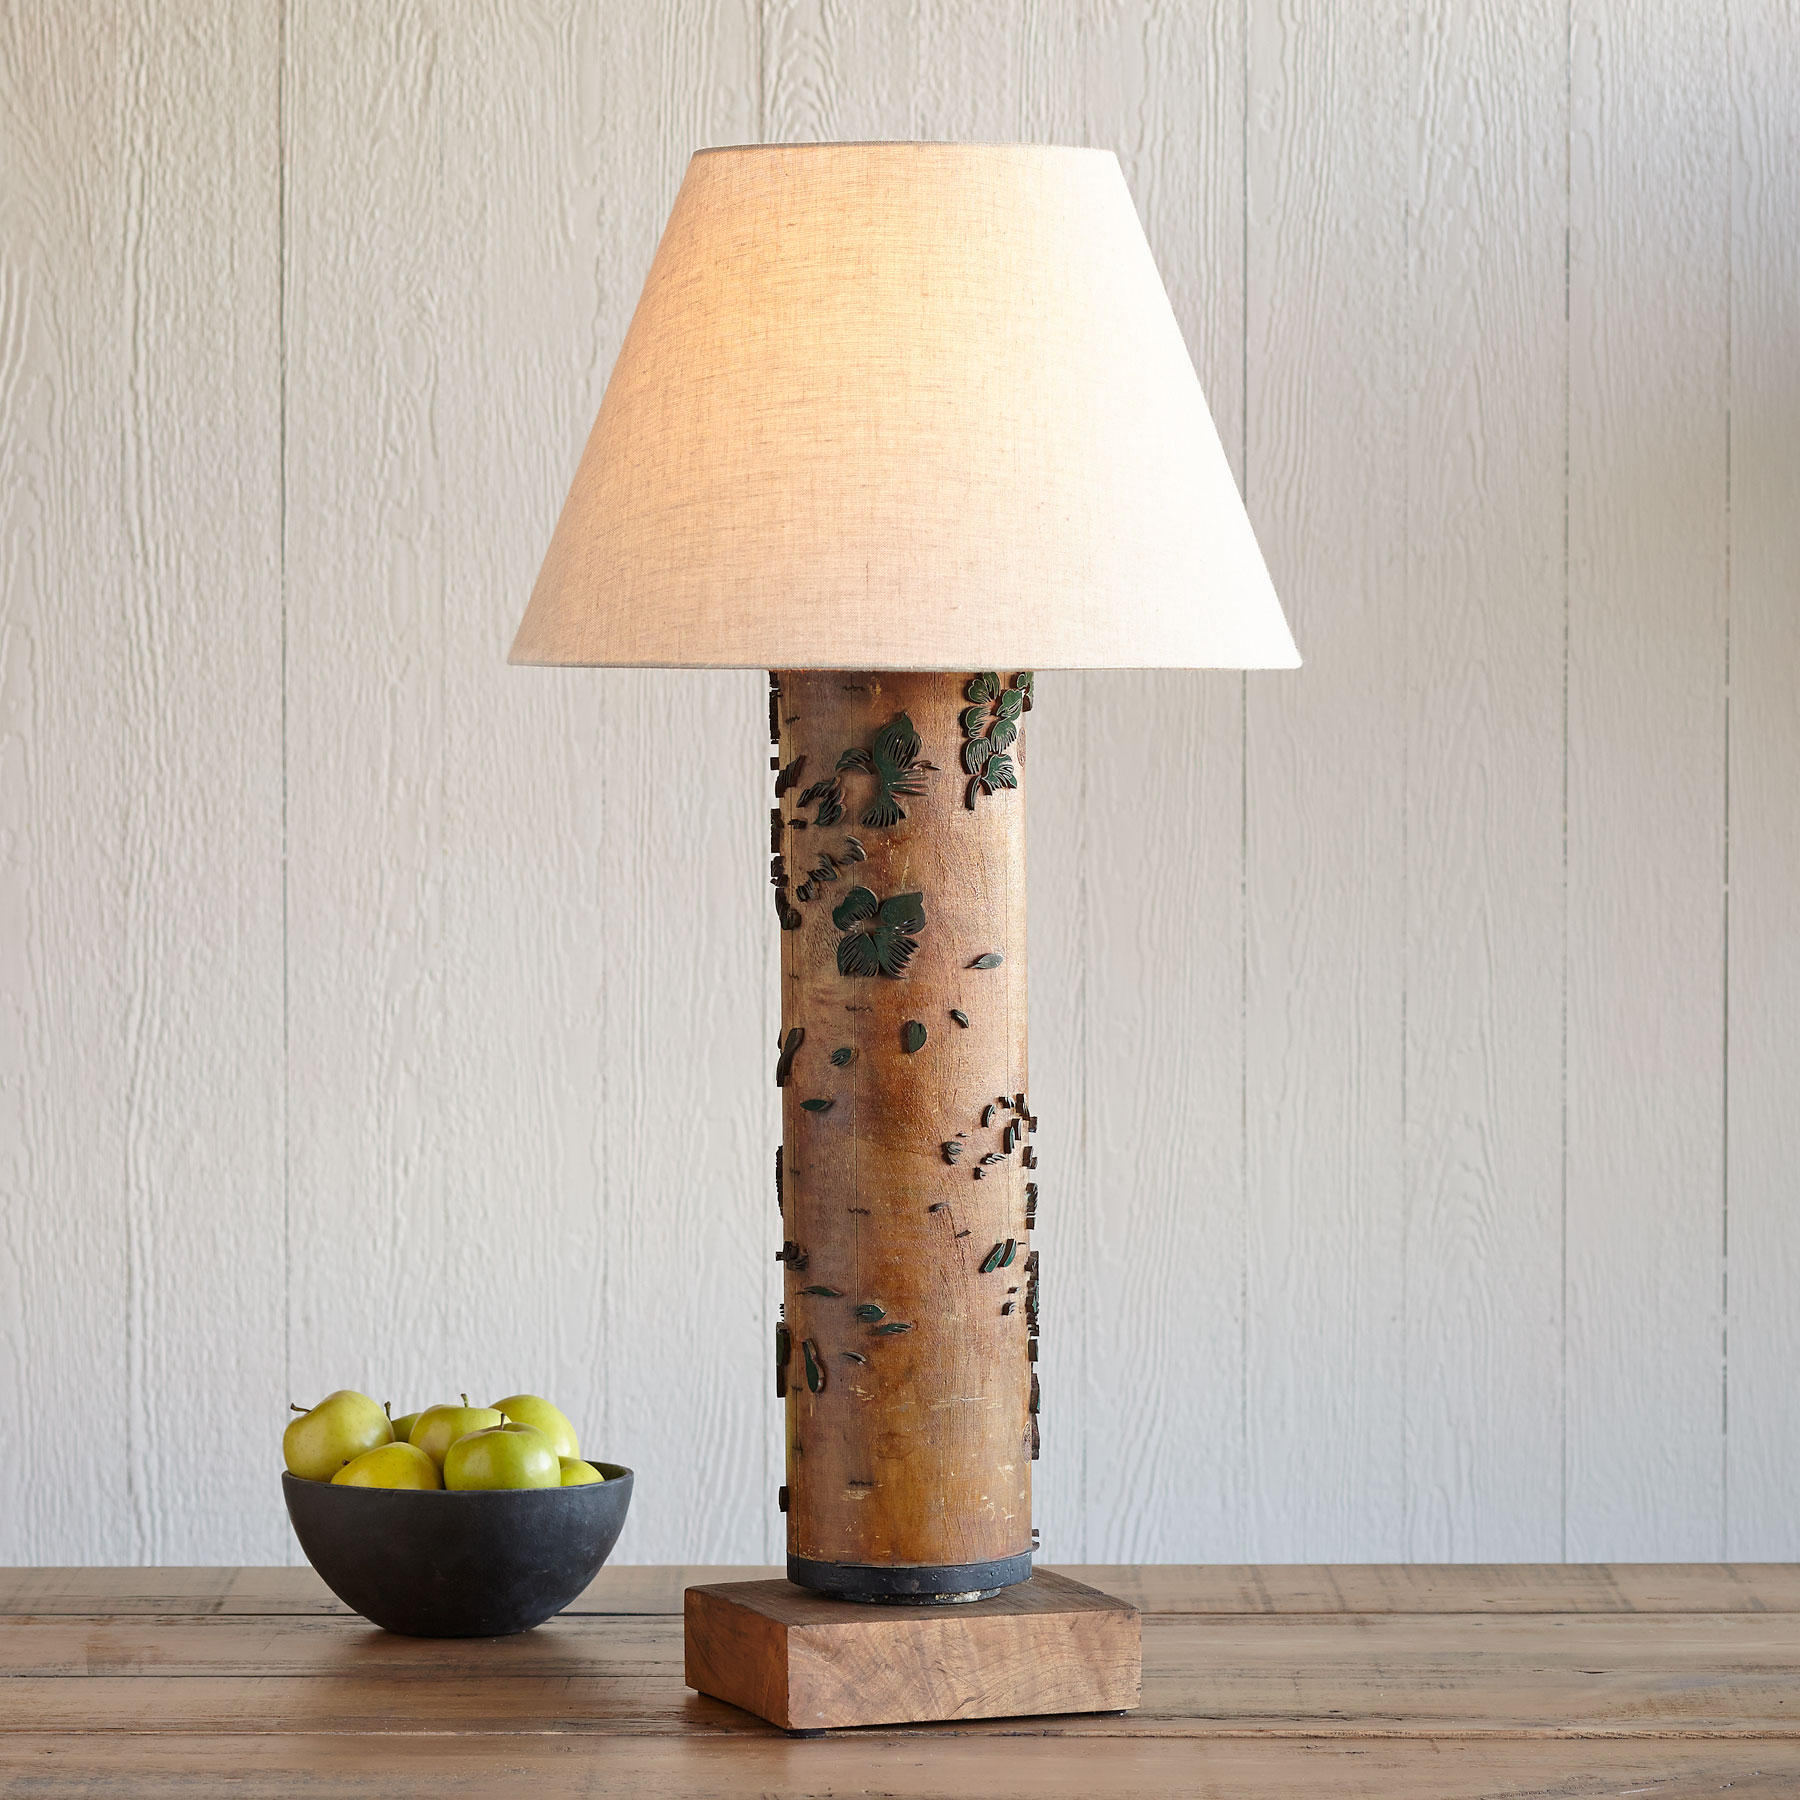 One-of-a-kind Buckingham Vintage Roller Lamp